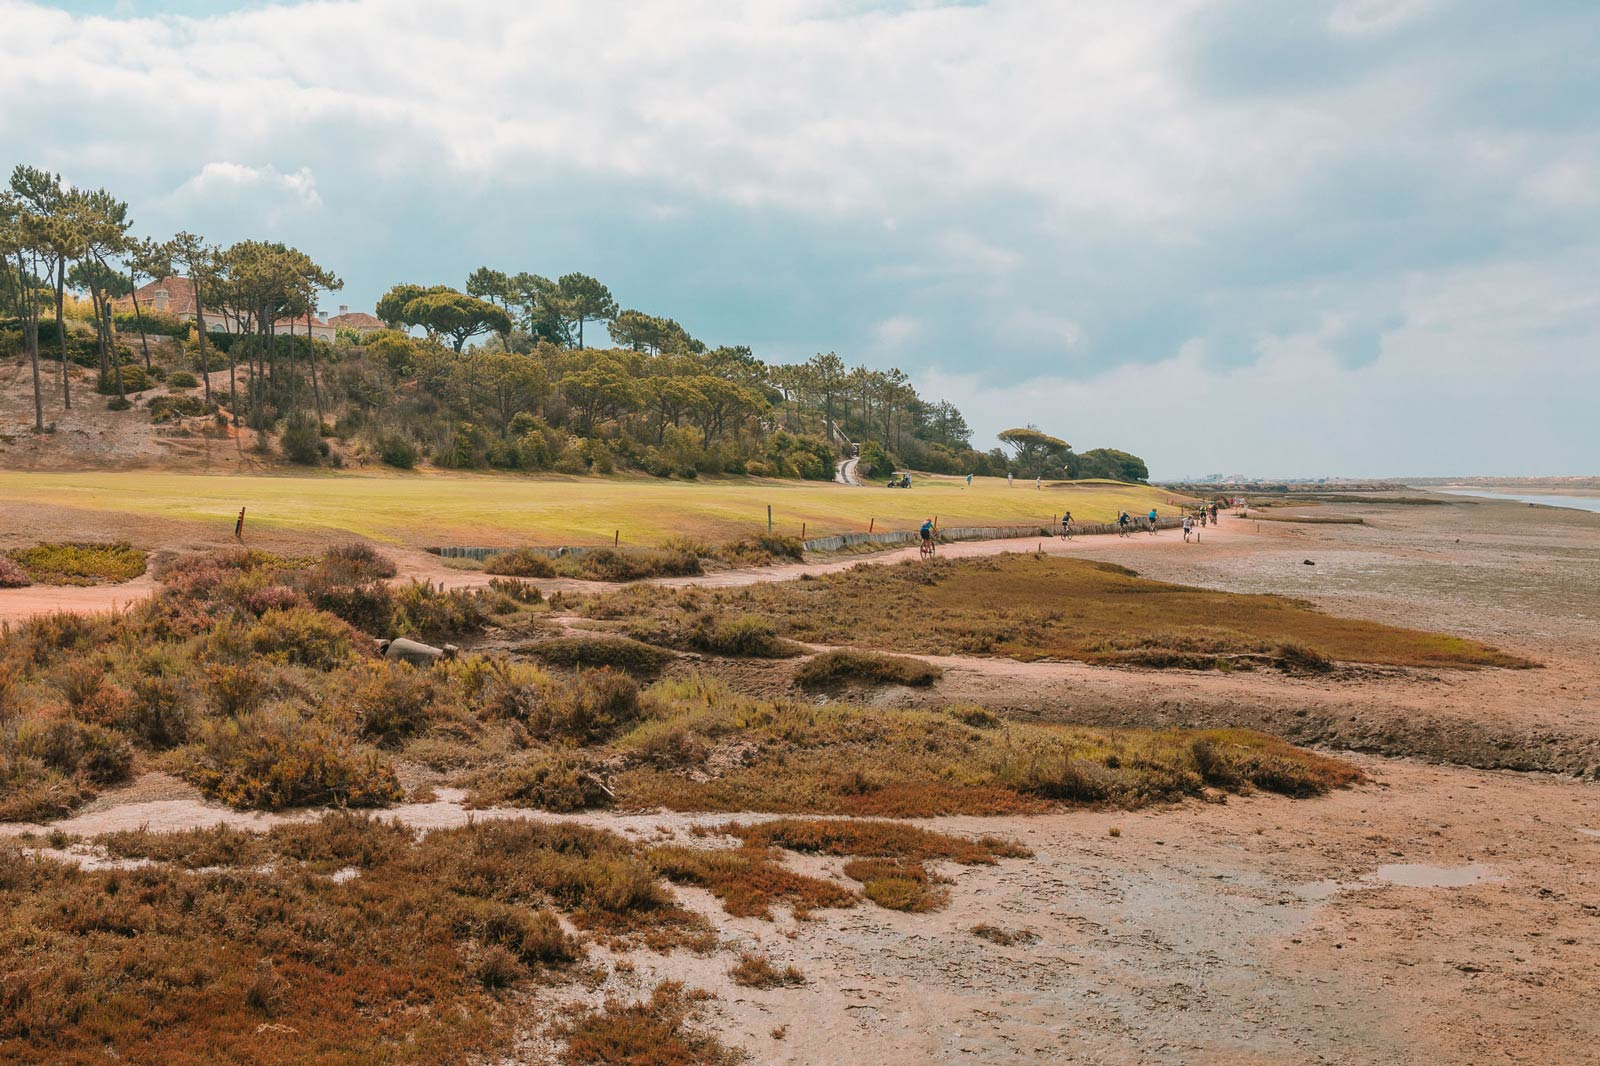 Quinta do Lago, one of the most exquisite regions in the Algarve